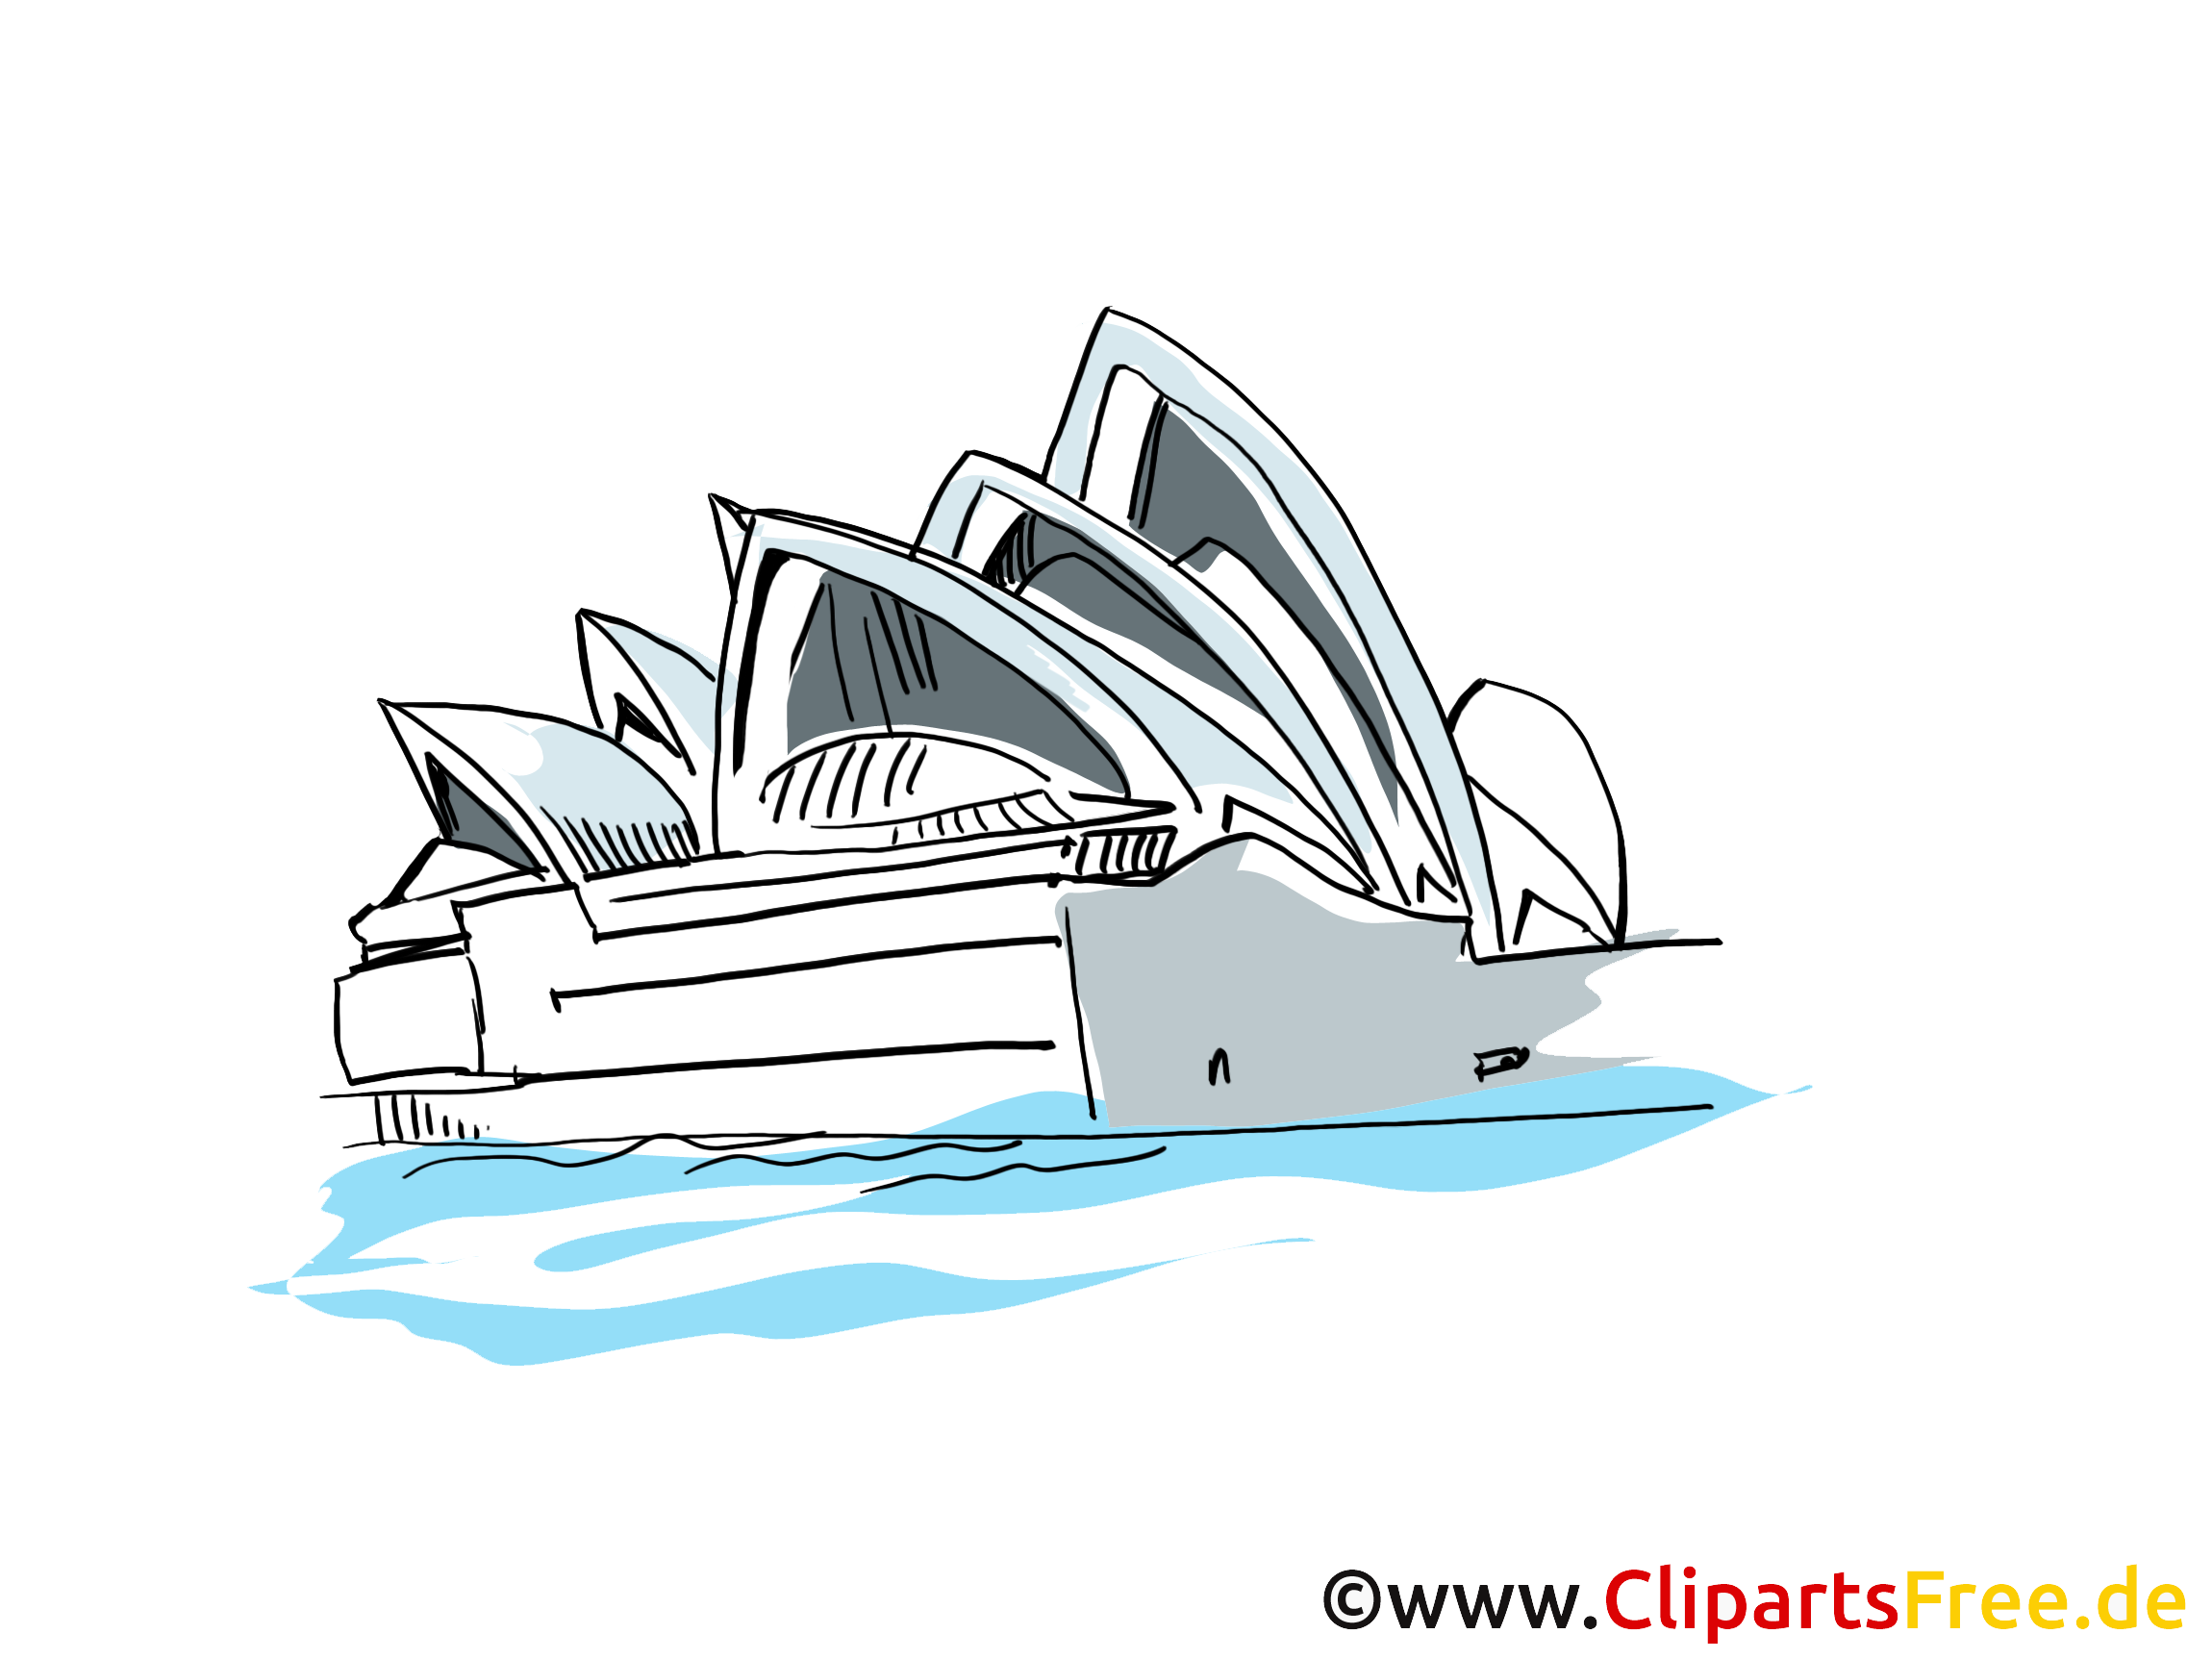 Opéra illustration gratuite - Sydney clipart